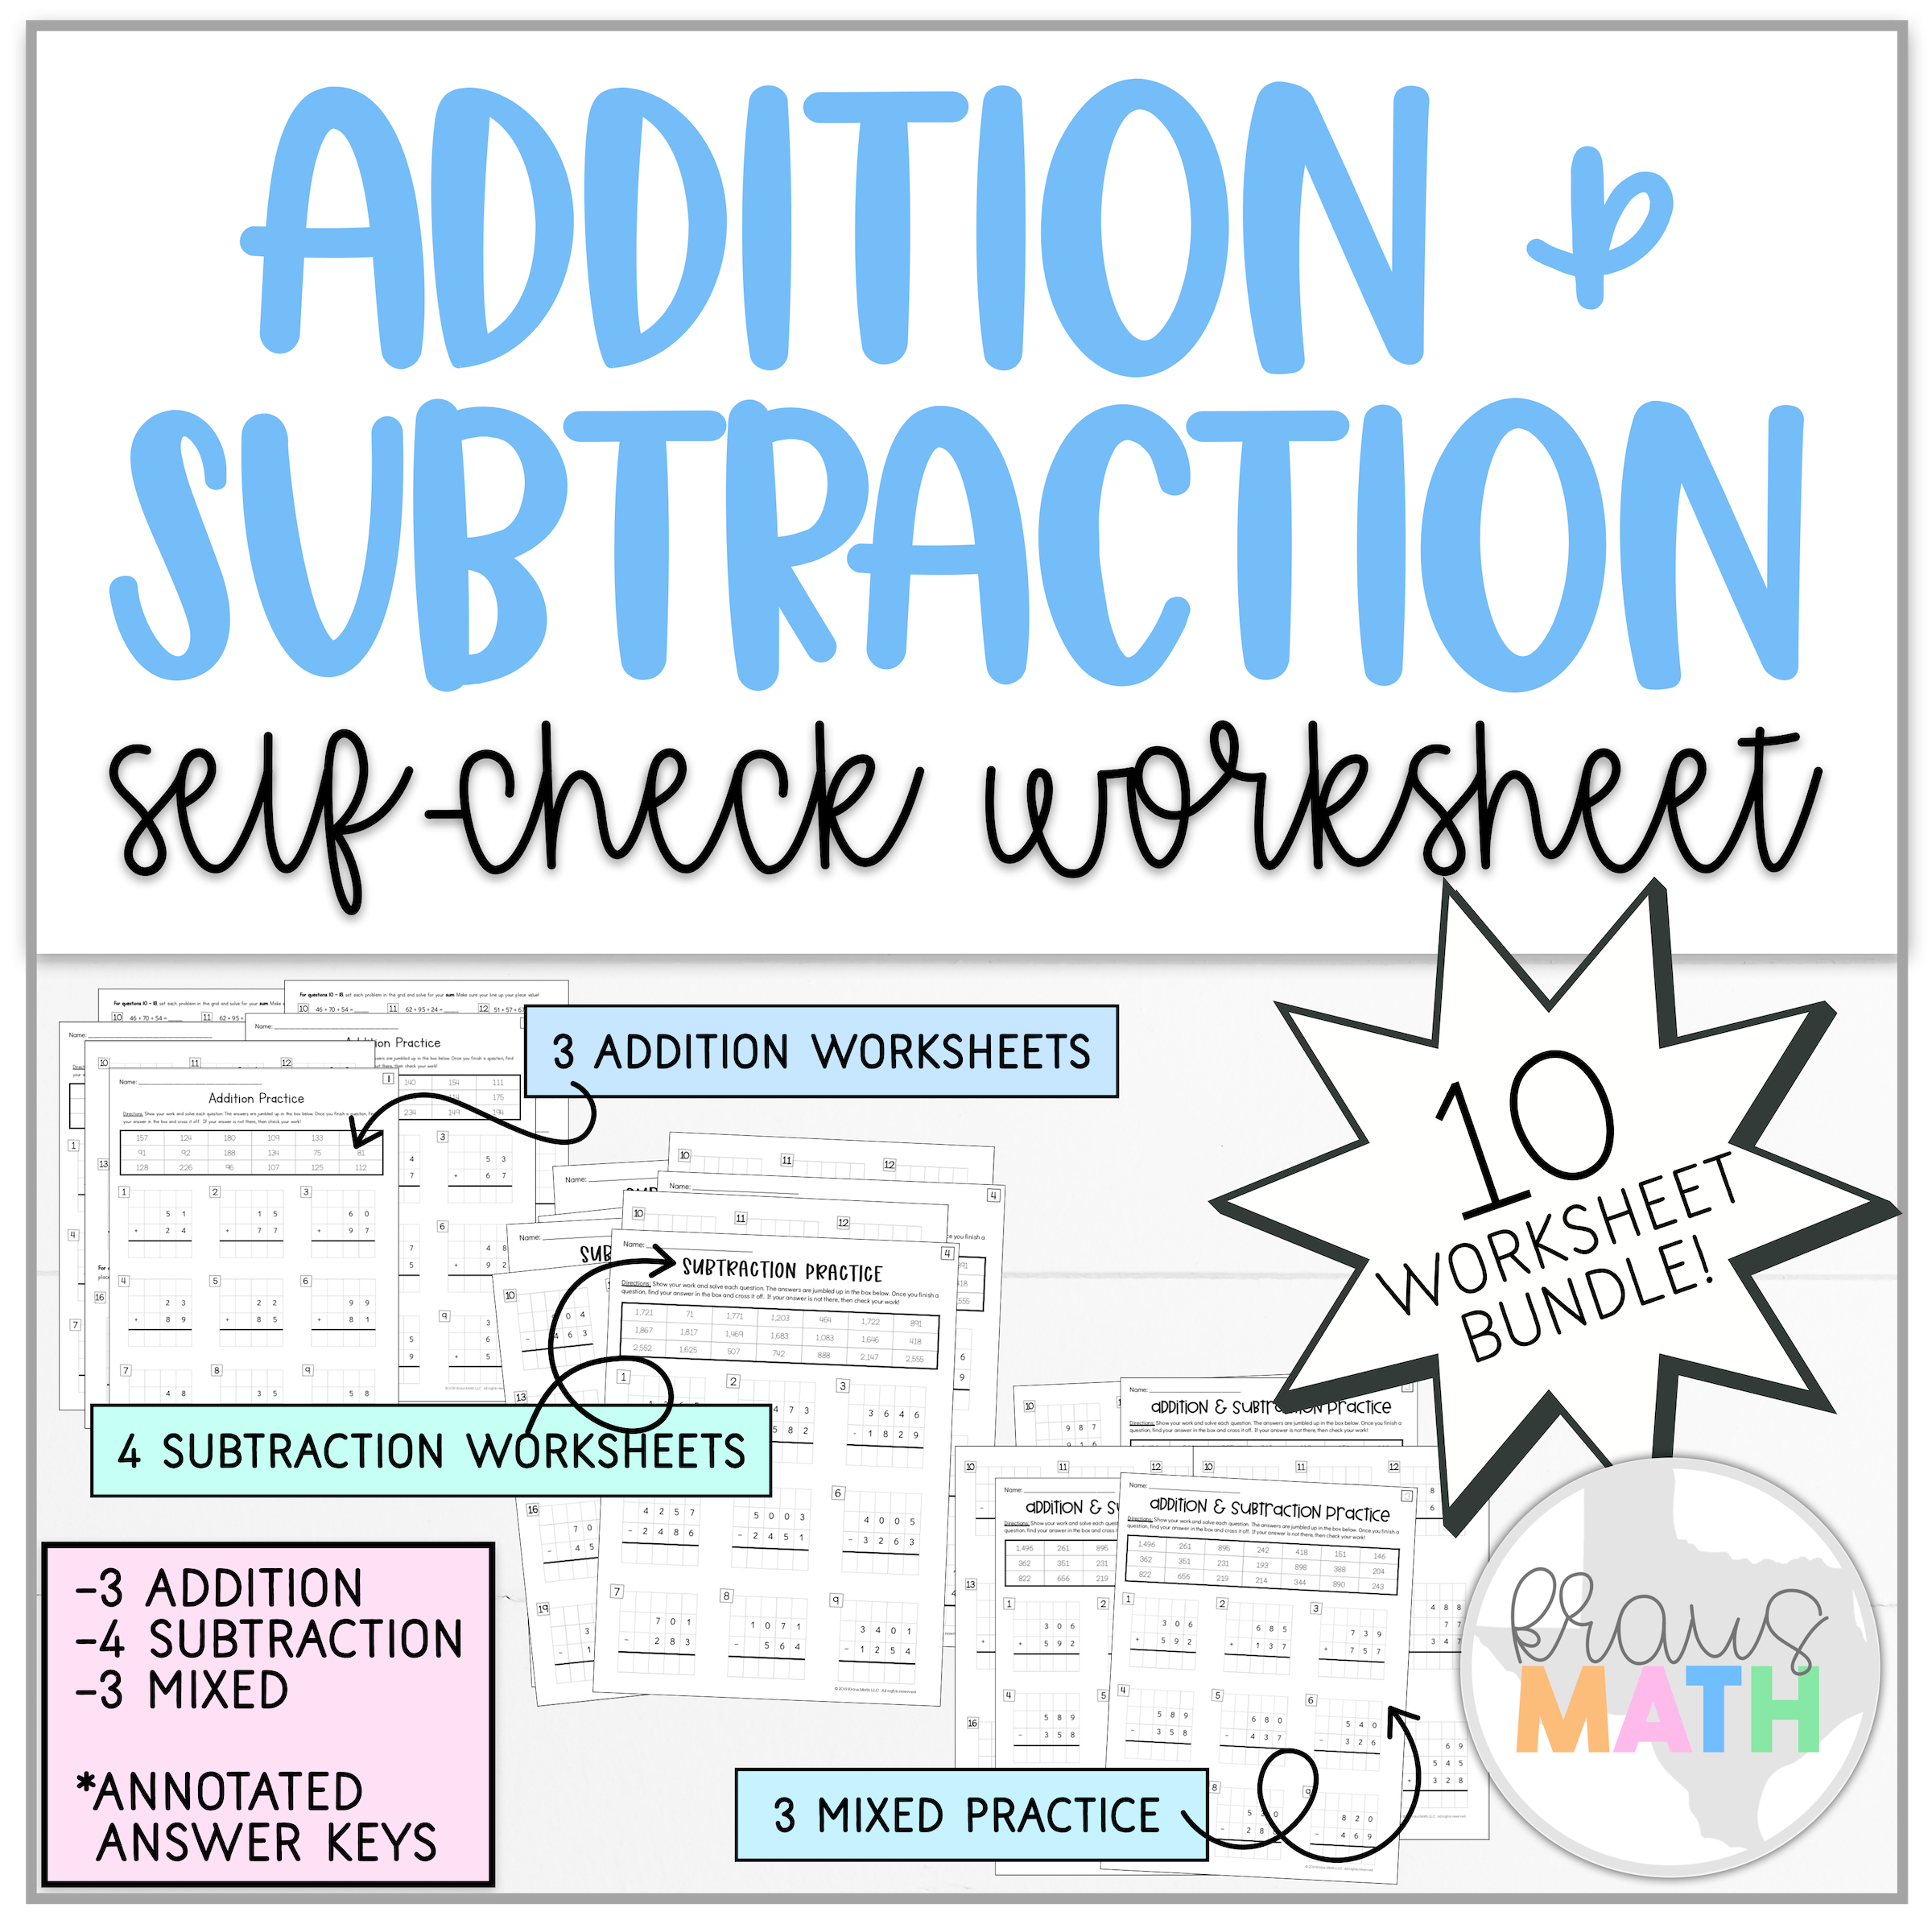 Addition Subtraction Self Check Worksheet Bundle Kraus Math 10 Worksheets Included 3 Addition 4 Subtra Guided Math Addition And Subtraction Subtraction [ 2390 x 2400 Pixel ]